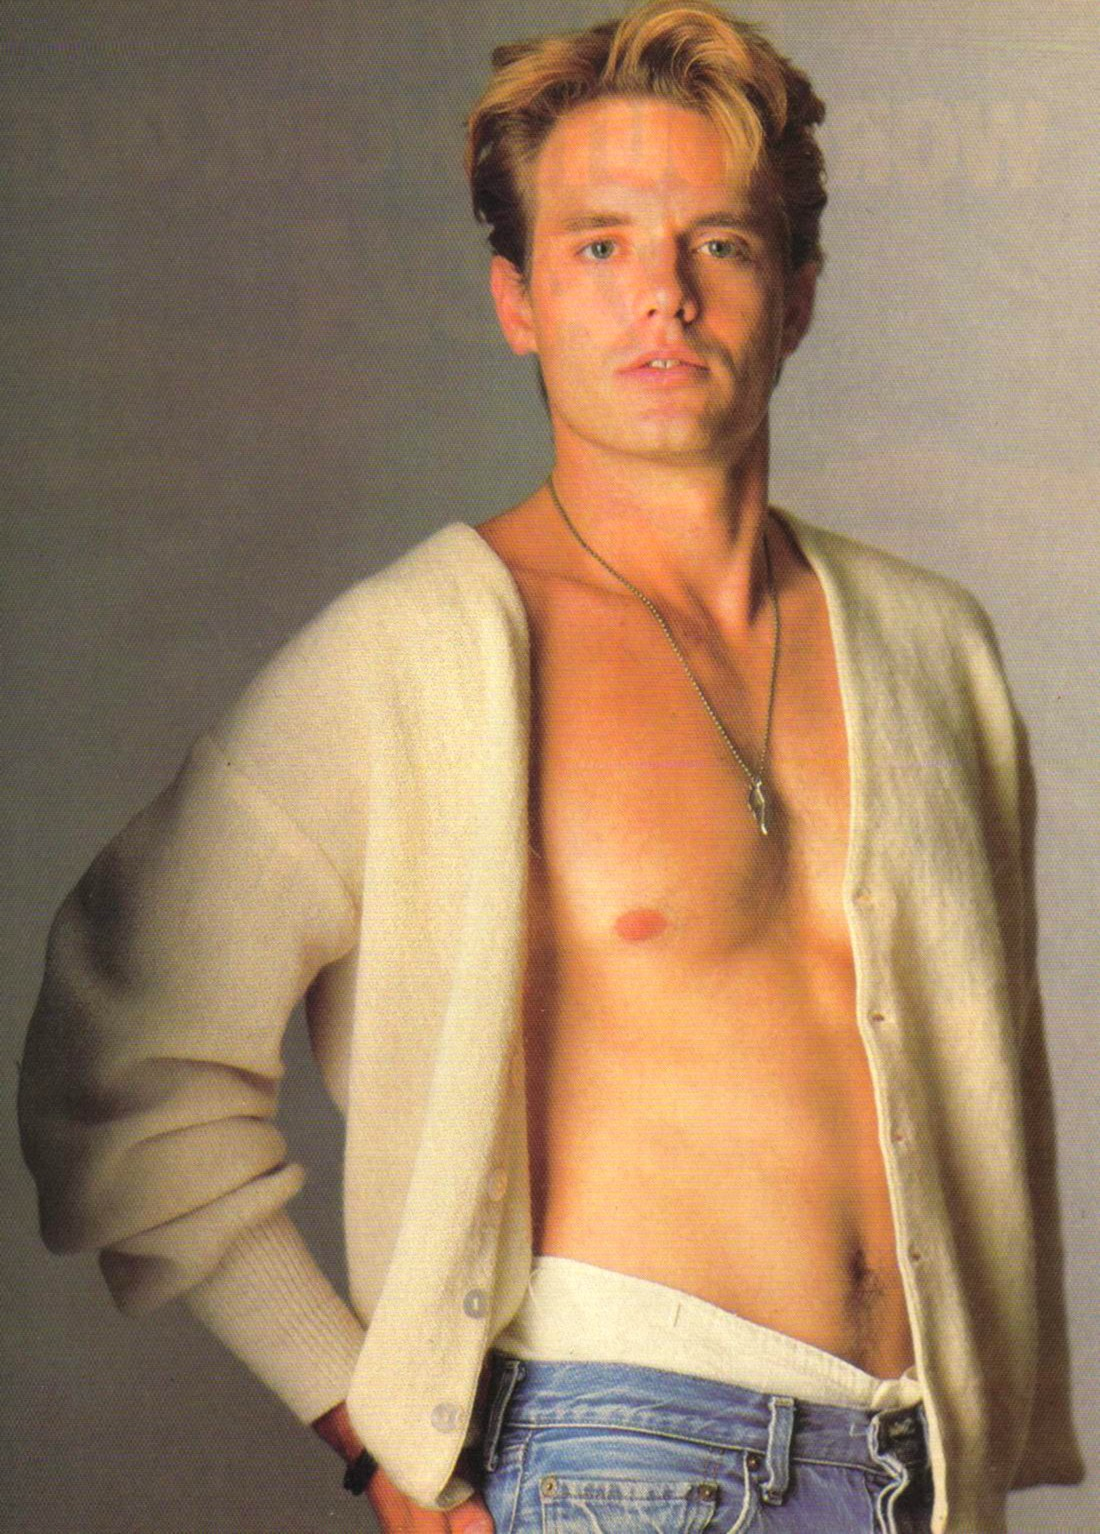 Michael Biehn Image 1 Of 2 | Rachael Edwards